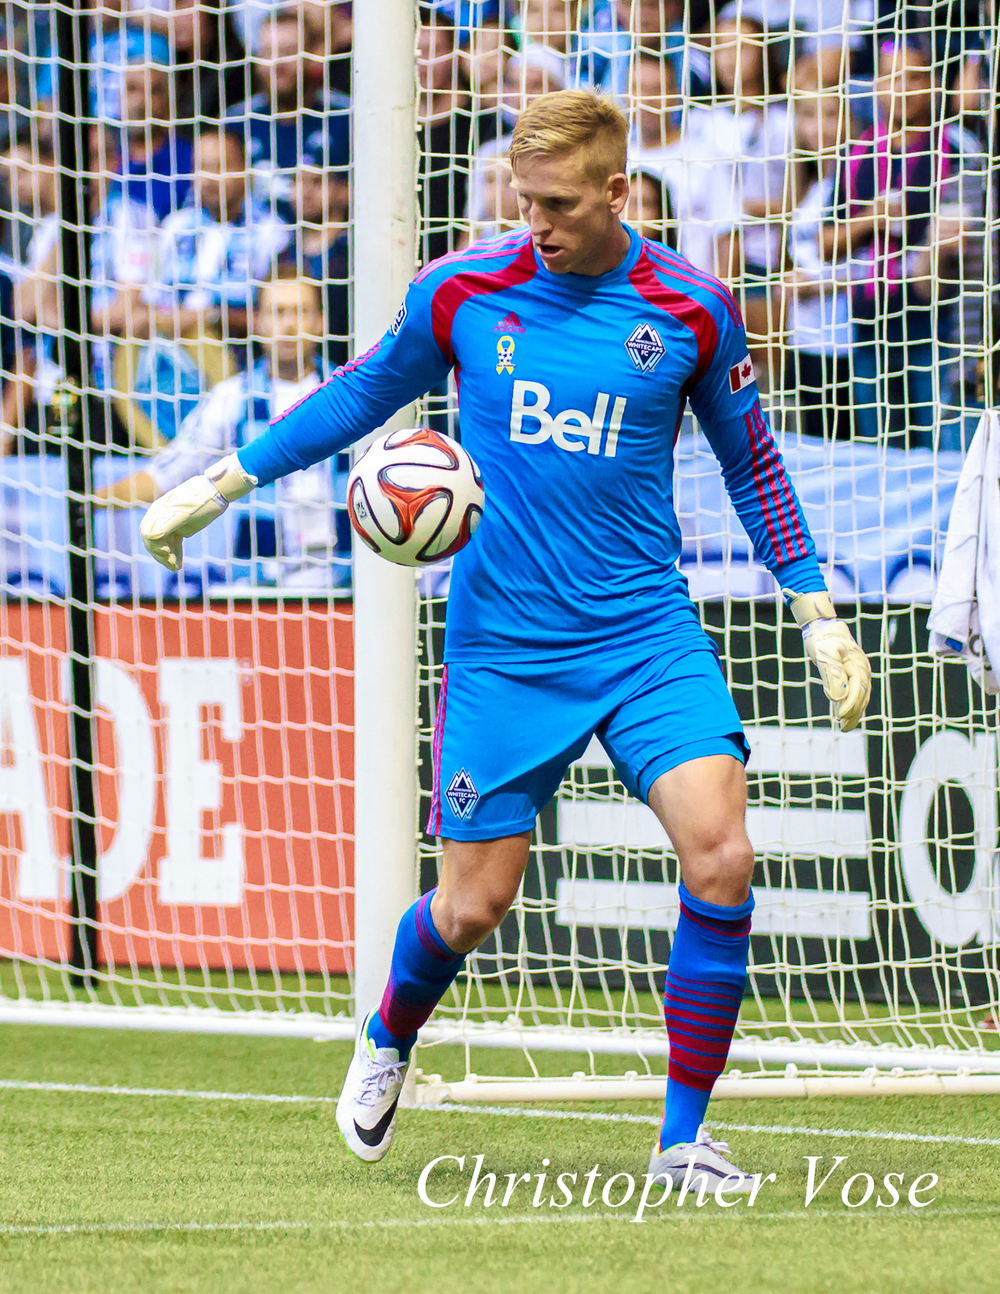 David Ousted may not have kept a clean sheet, but he certainly kept the Whitecaps in the game, and maybe the Cup